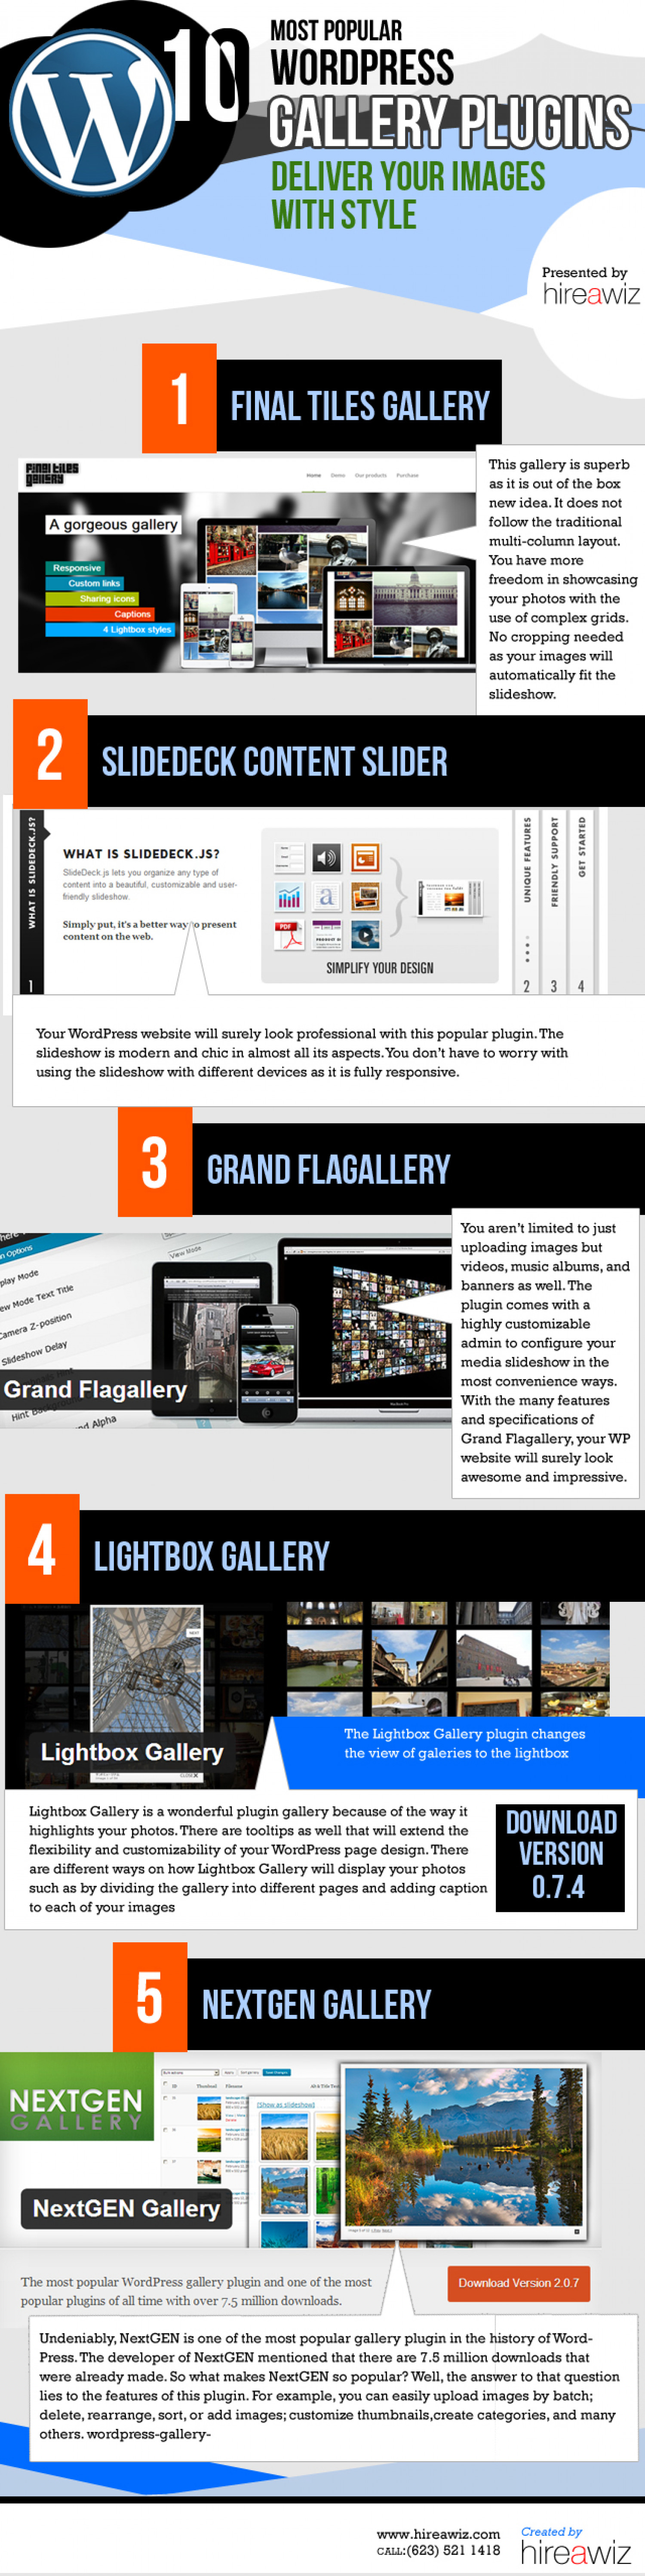 Most Popular WordPress Gallery Plugins Infographic